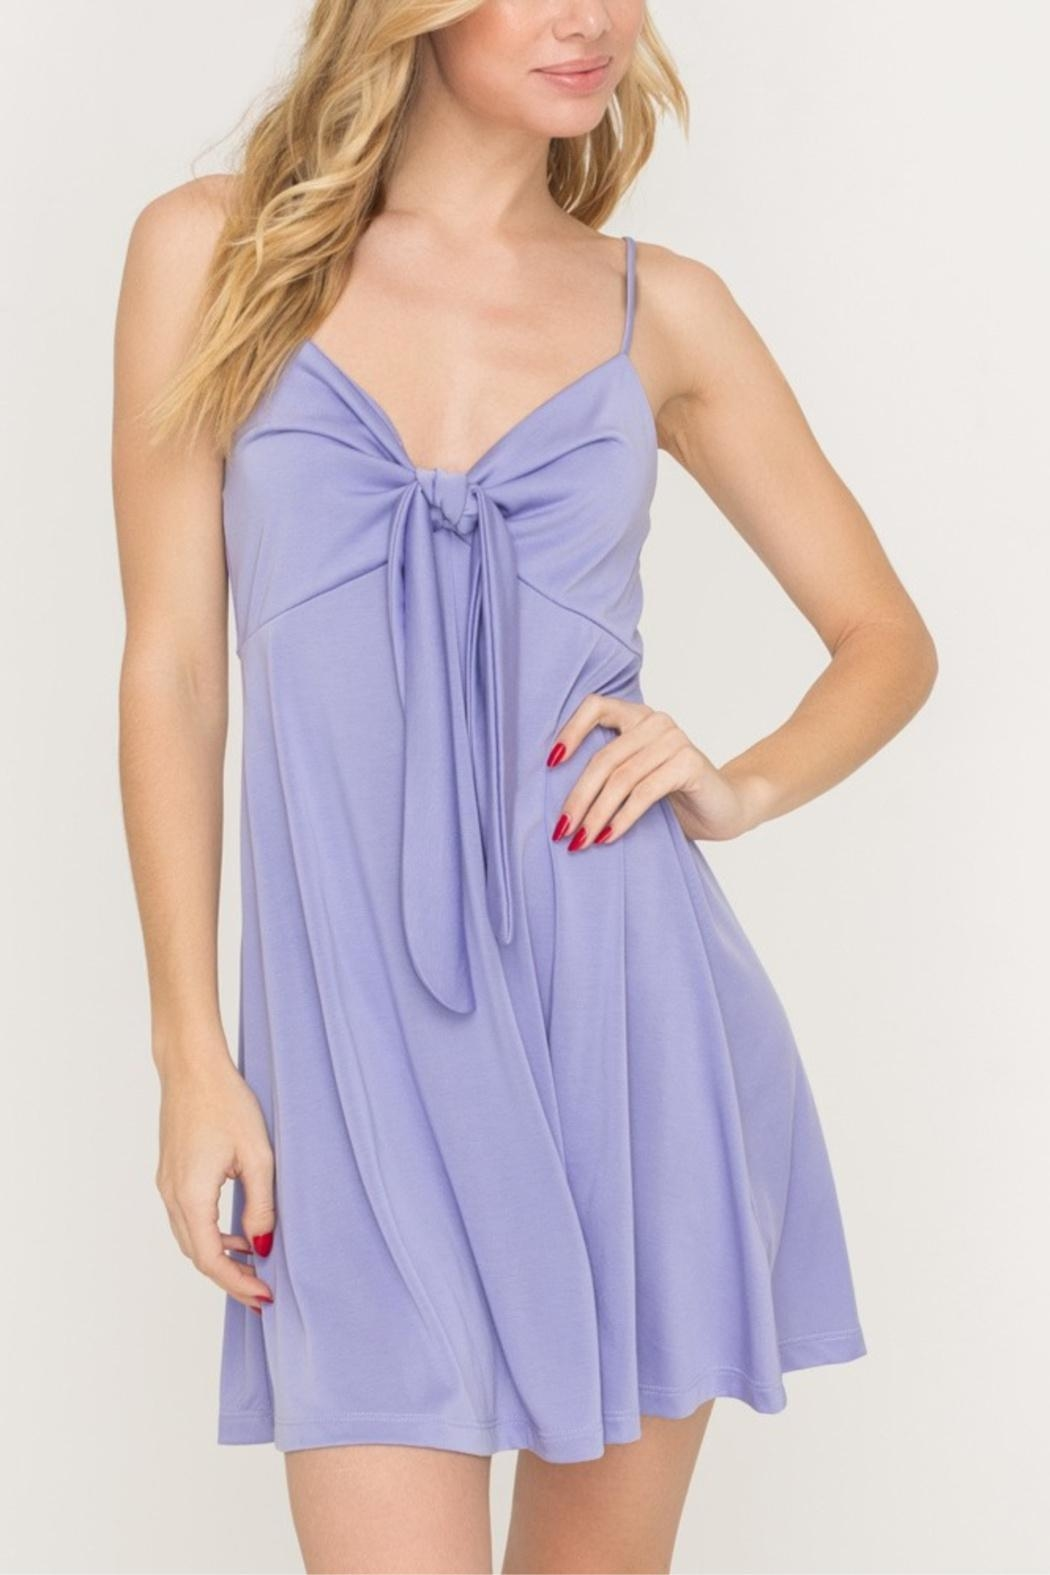 Lush Tie-Accent Flaired Mini-Dress - Main Image